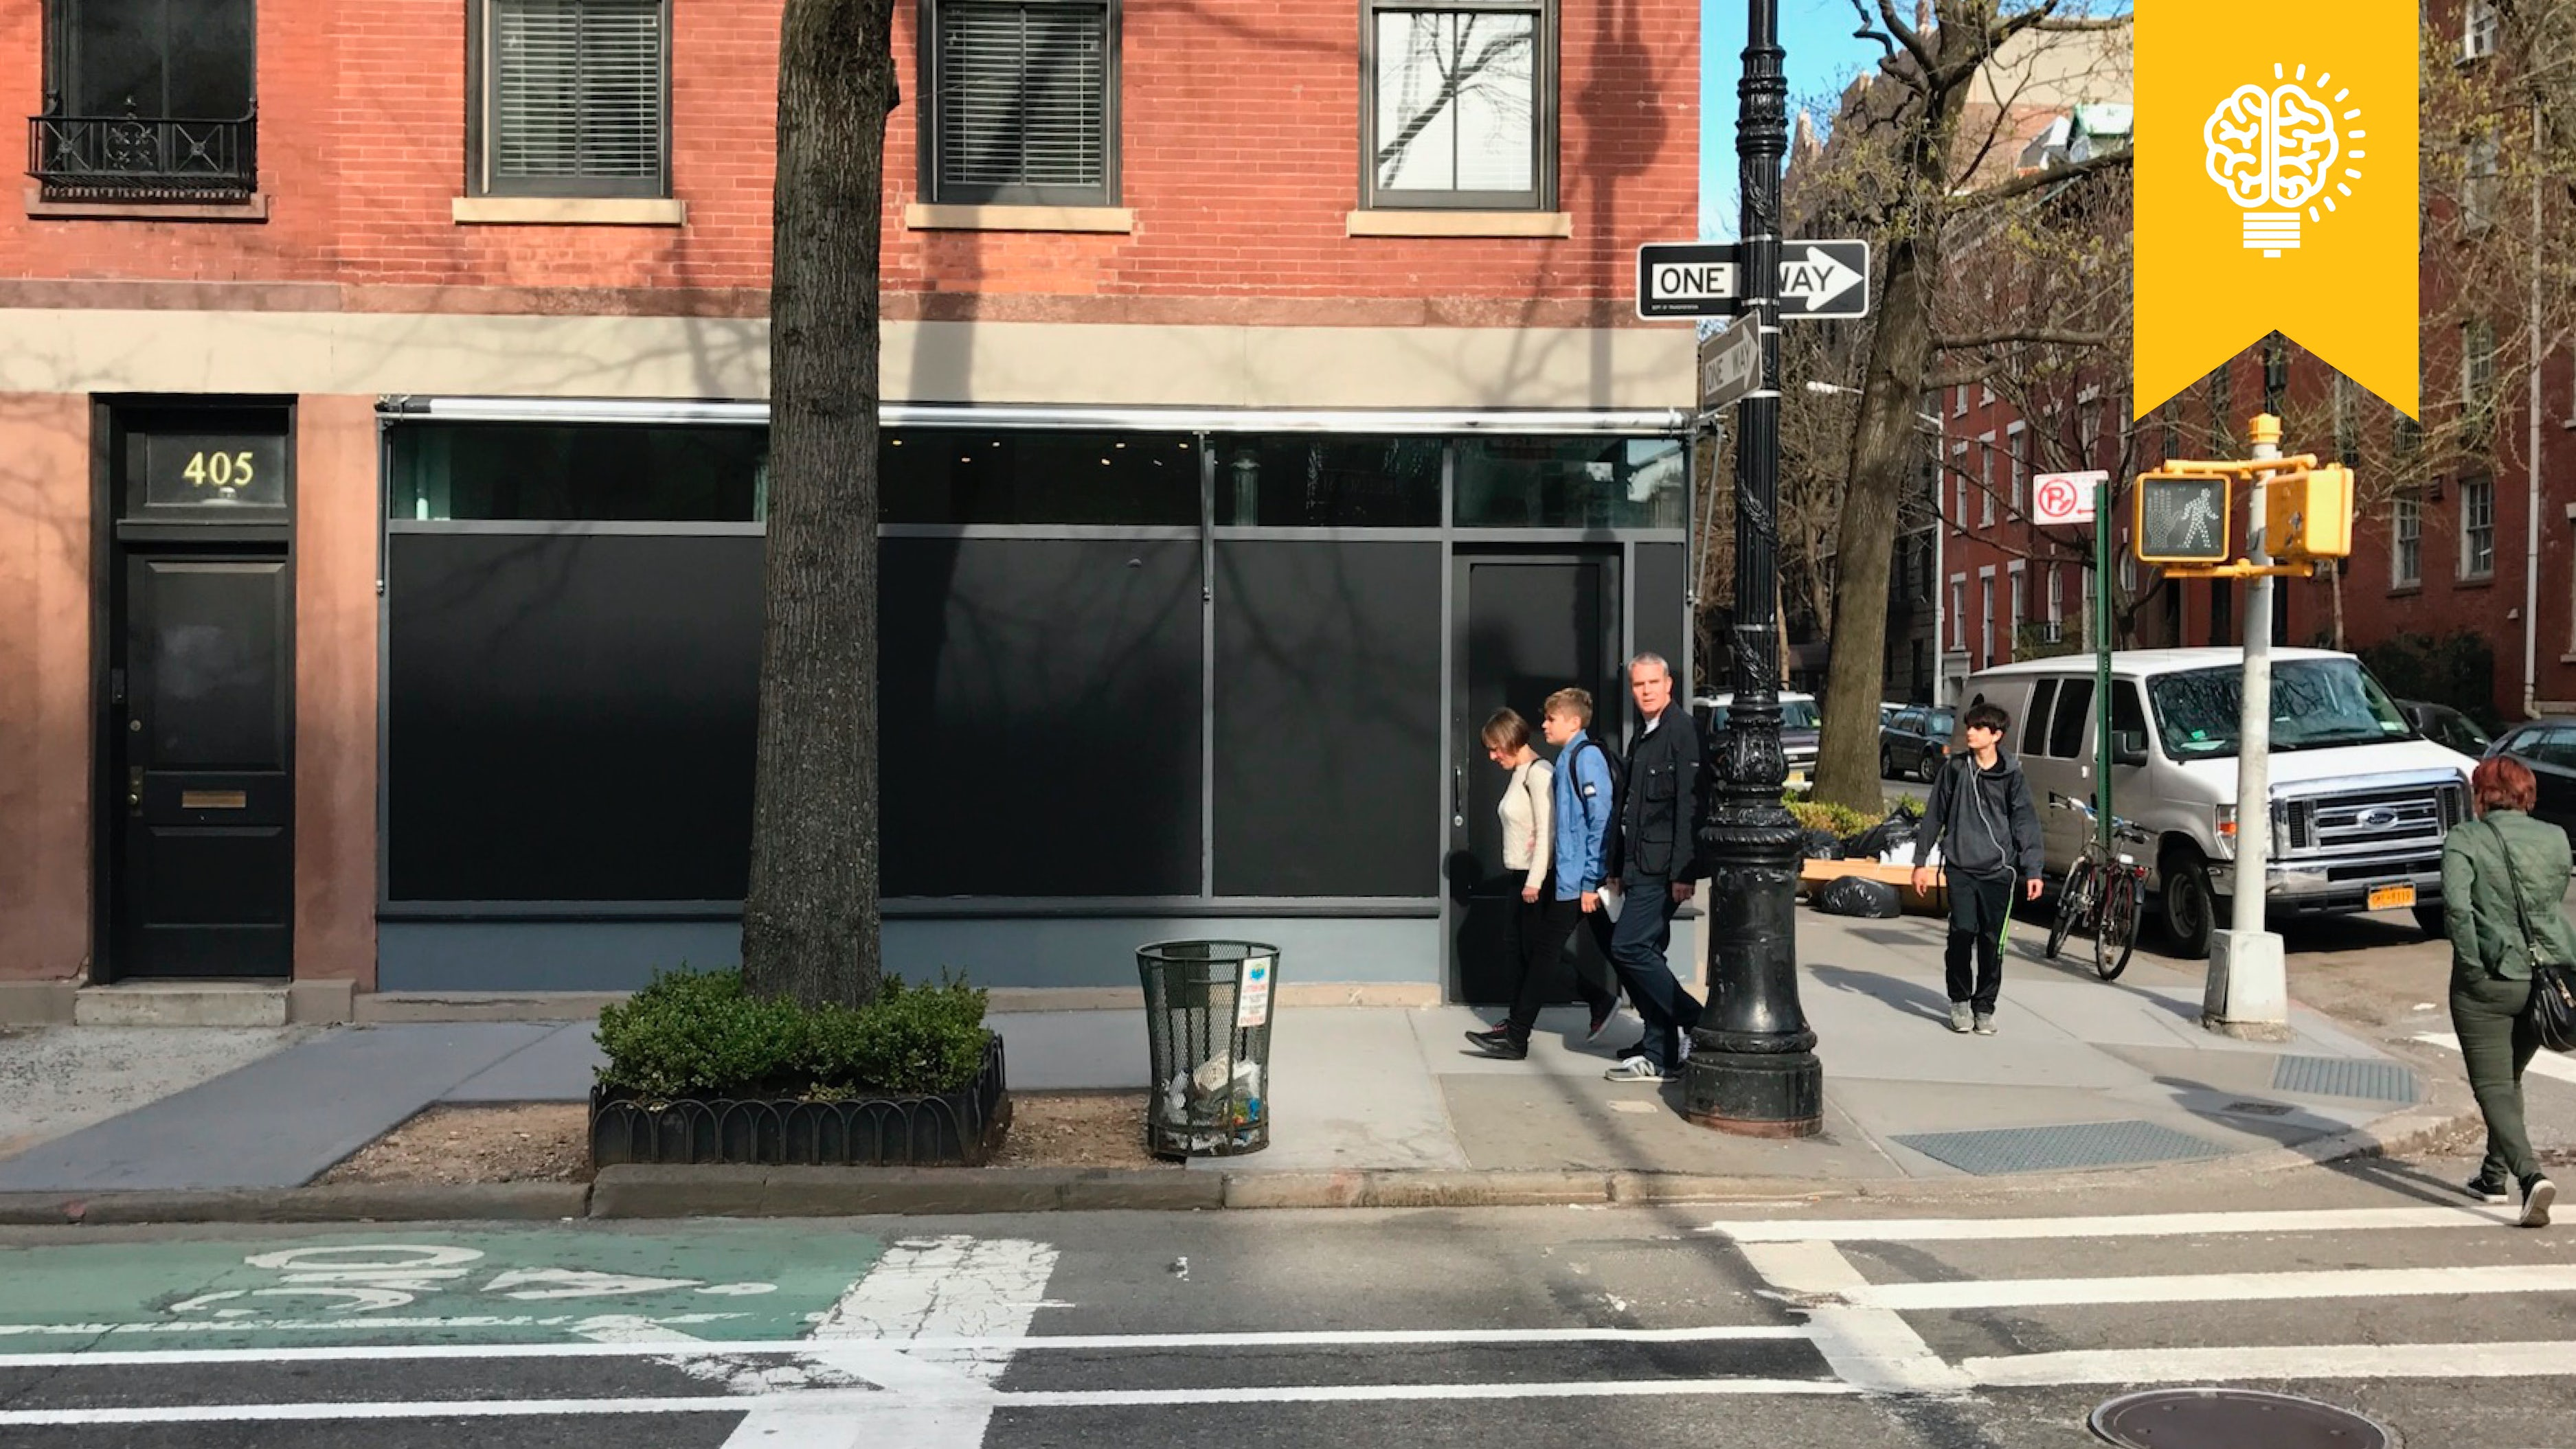 A former Marc Jacobs store in the West Village | Source: BoF